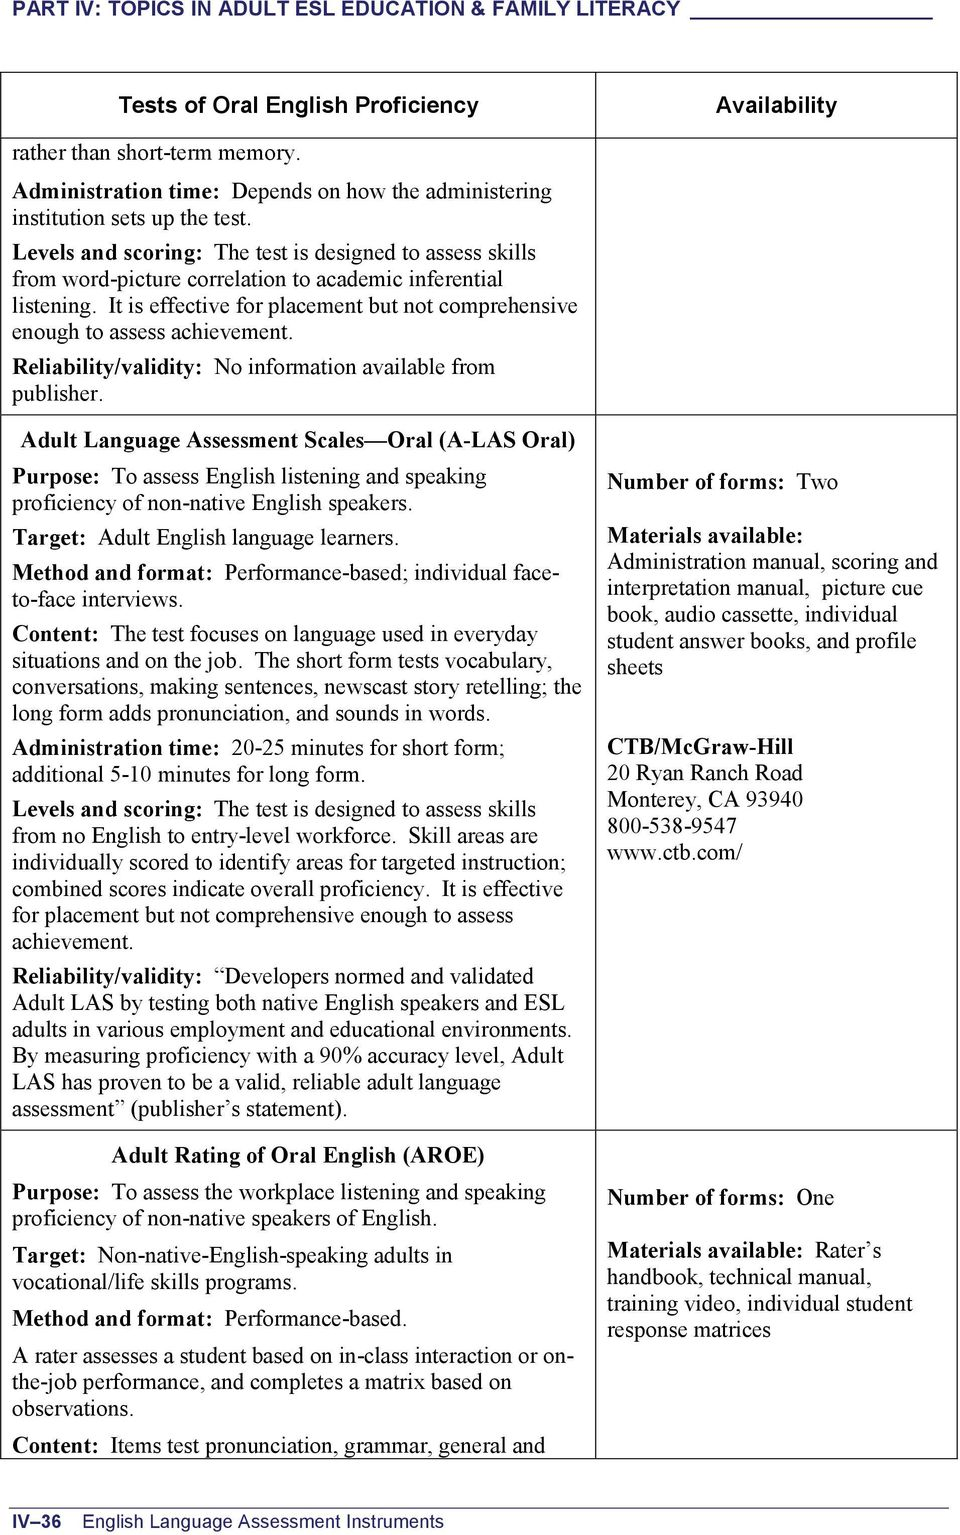 English Language Assessment Instruments for Adults Learning